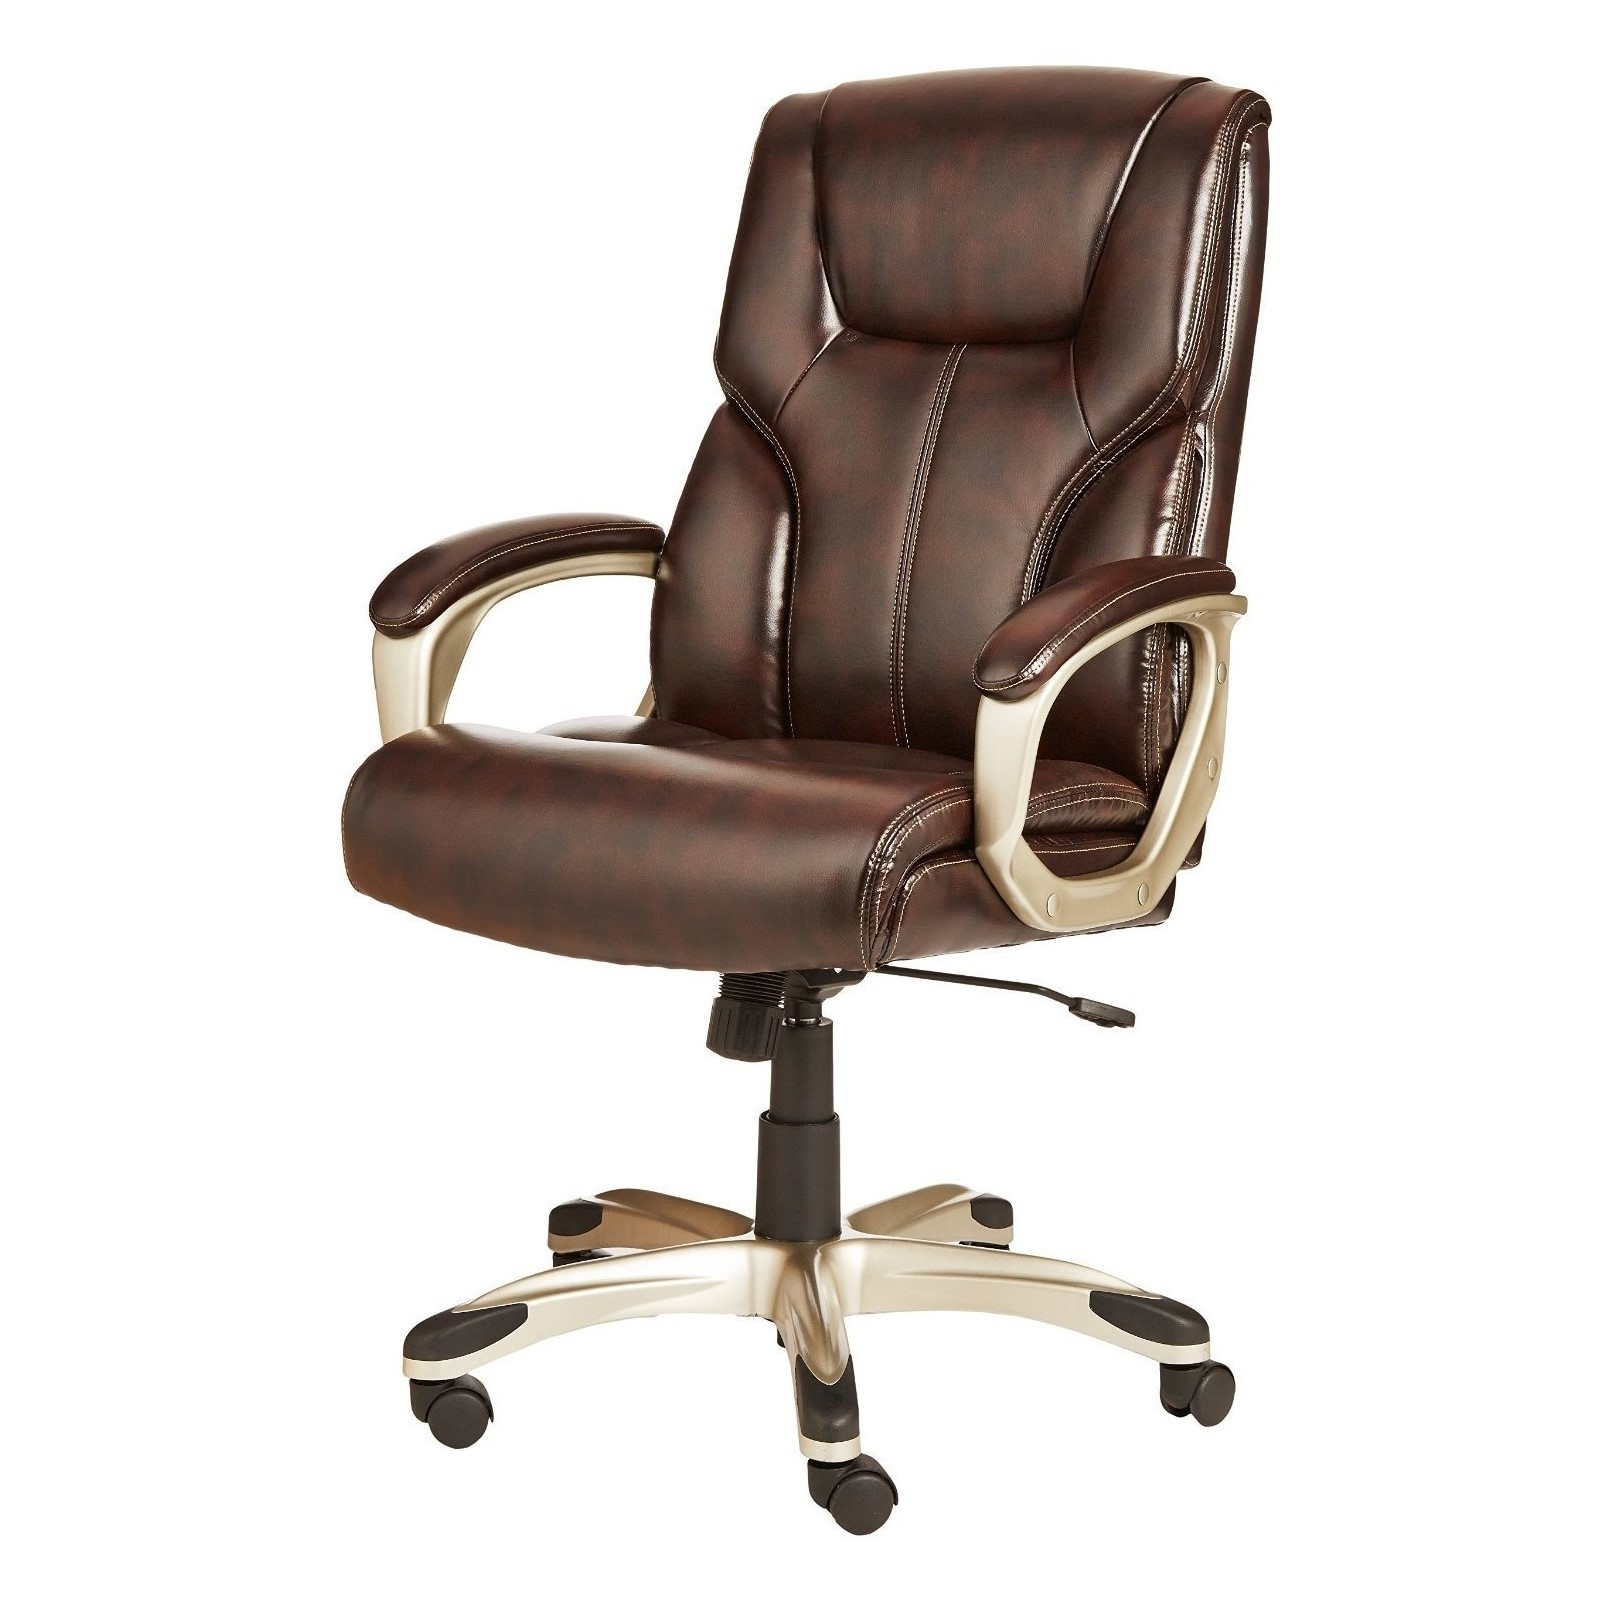 High Back Executive Reclining Office Chair – Brown – Grand Finder In Most Current Sleek Style Executive Office Chairs (View 5 of 20)